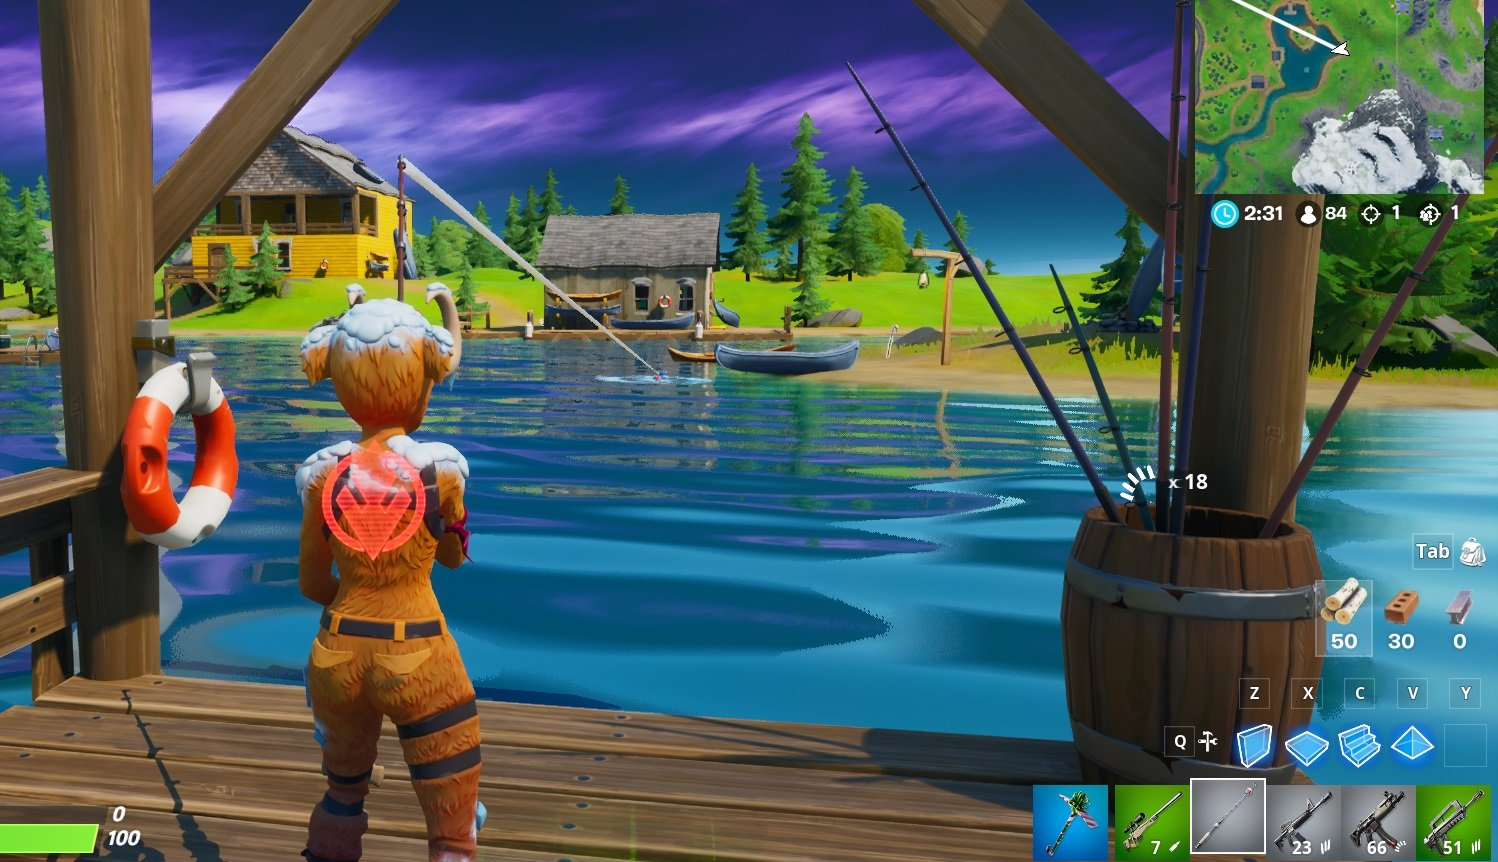 Where to catch a fish at Lake Canoe in Fortnite